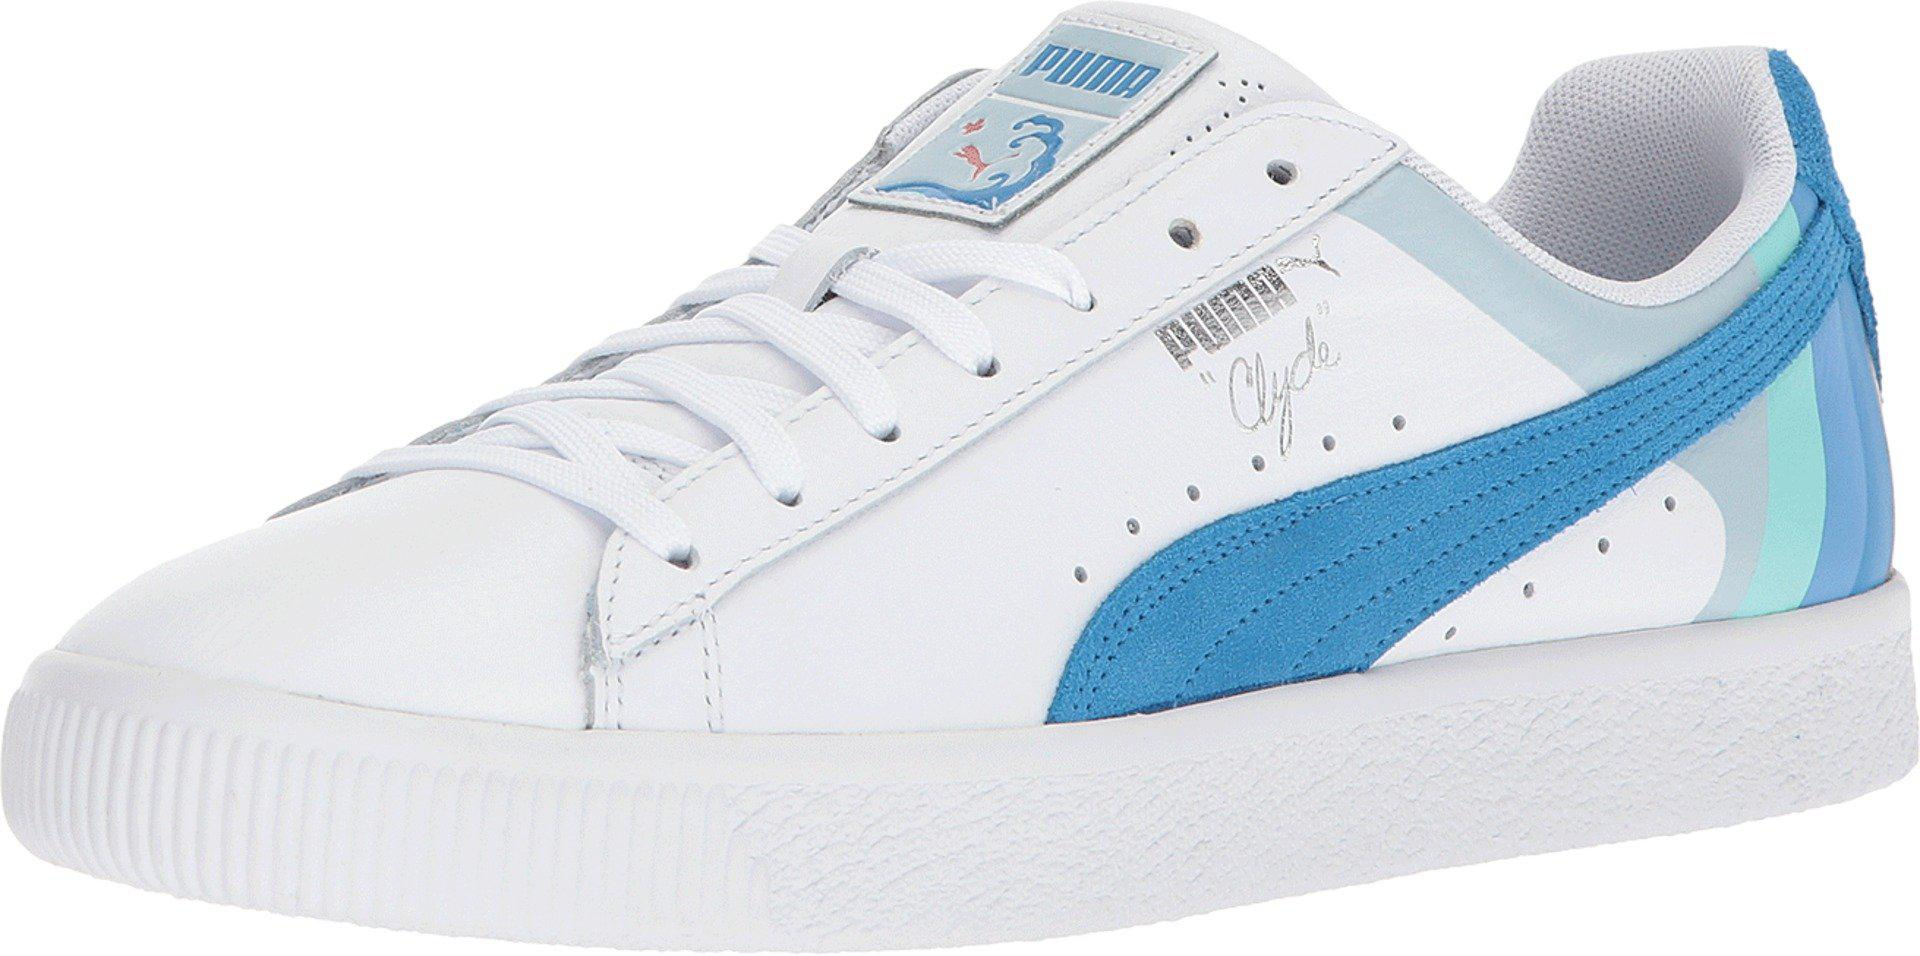 PUMA Leather Clyde - Pink Dolphin in